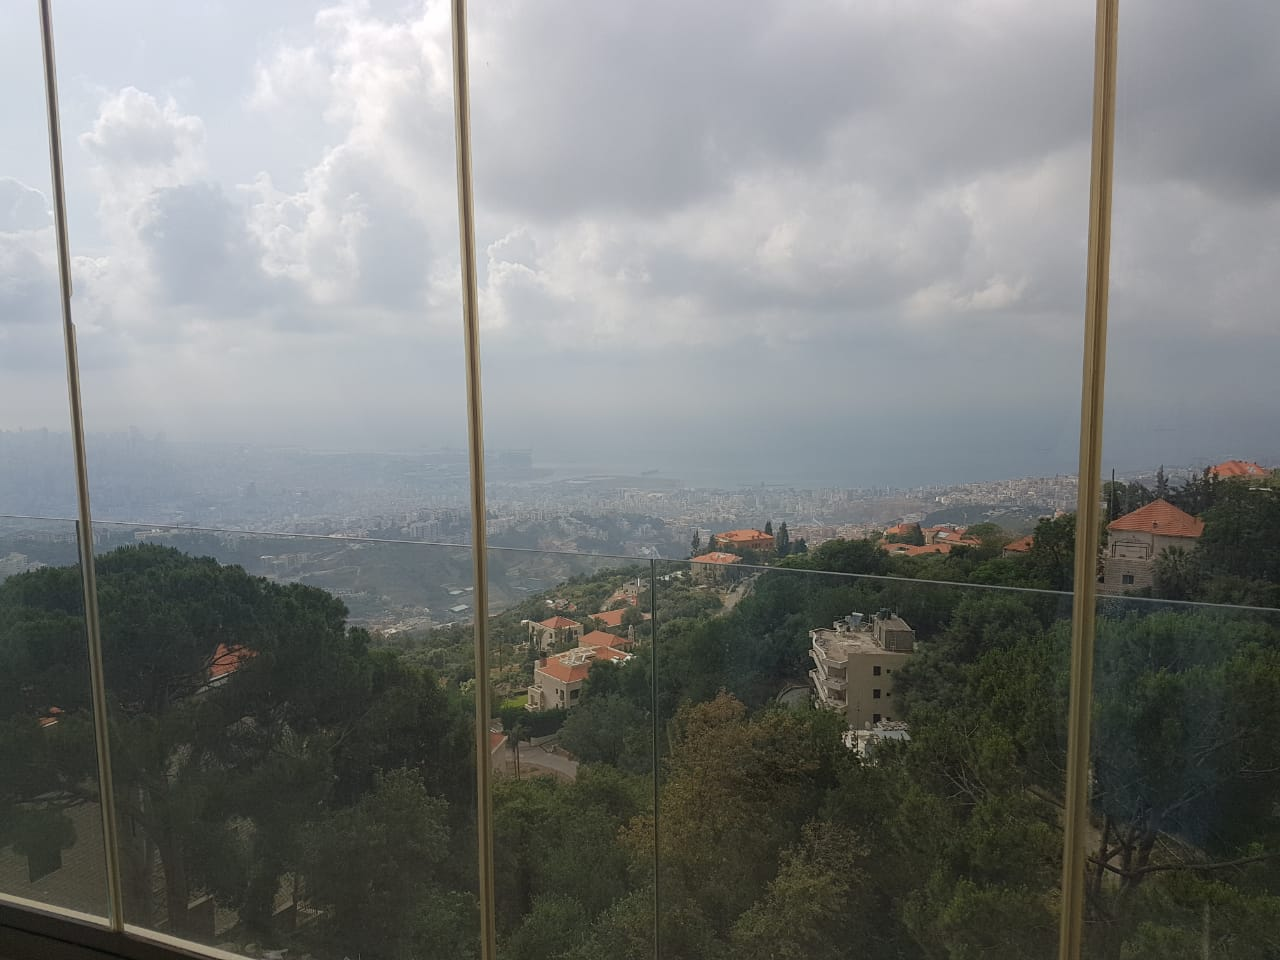 RL-2378 Apartment for Sale in Metn, Ain saade - $ 650,000